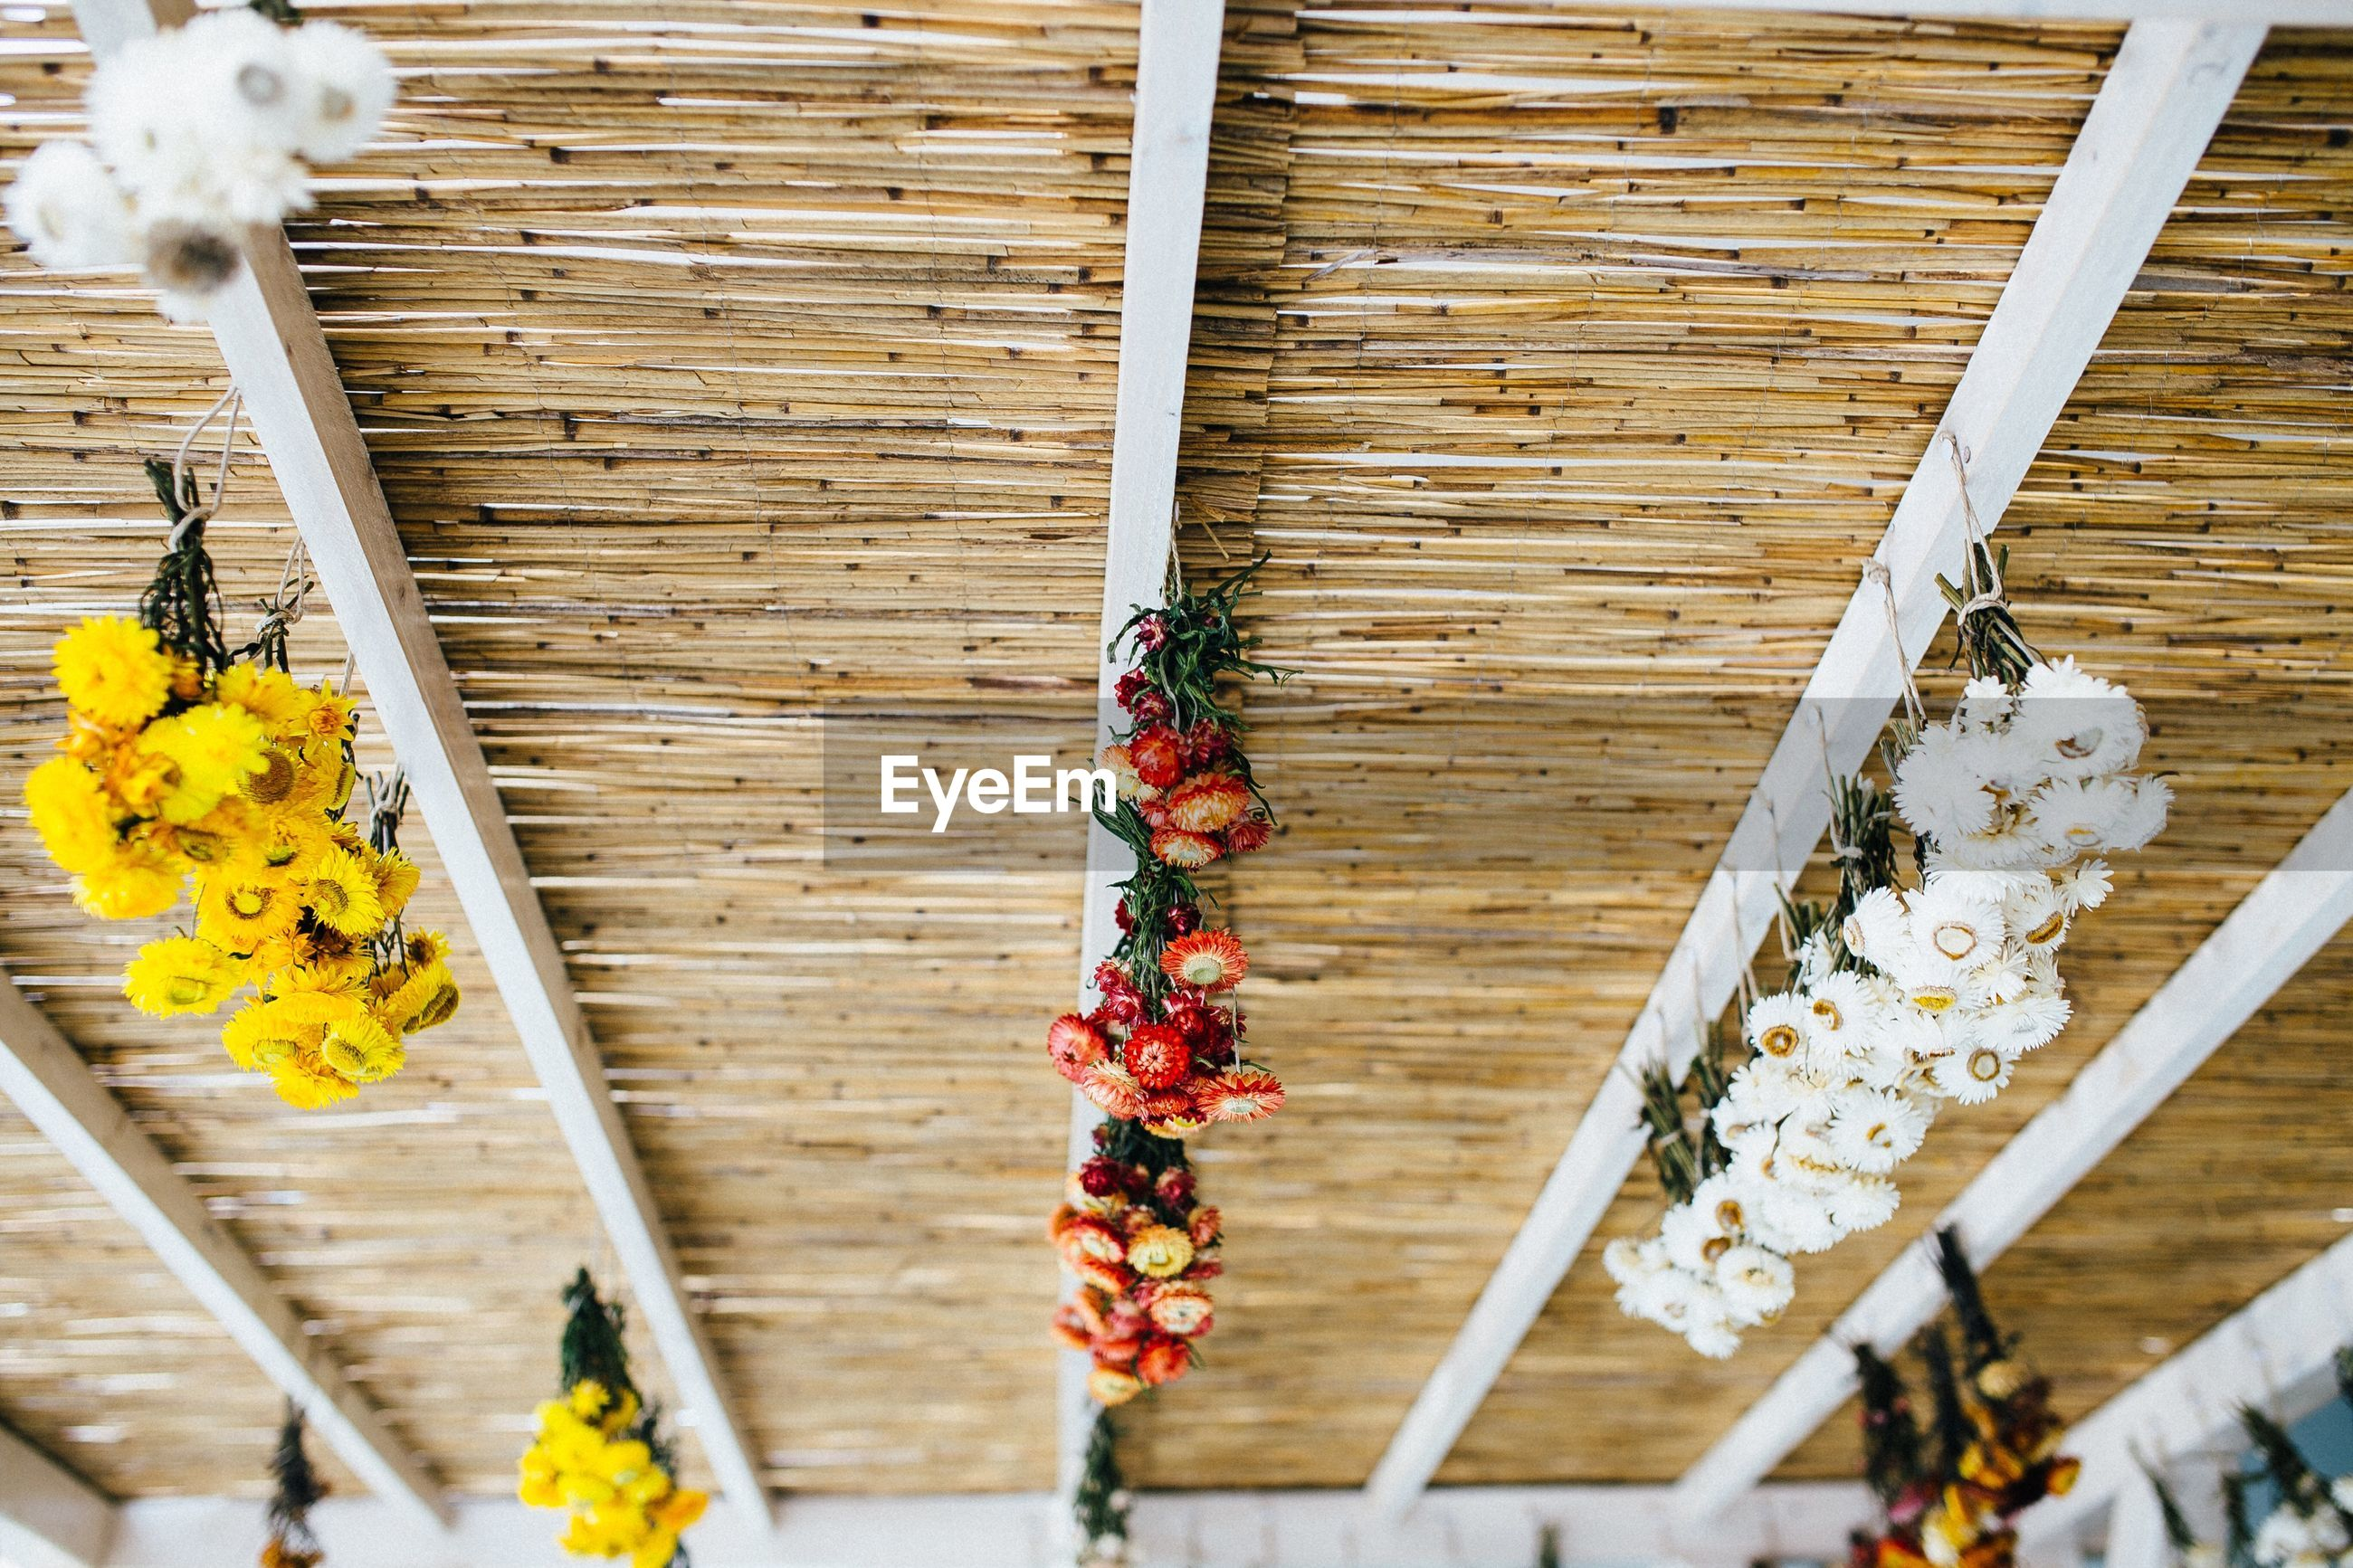 Low angle view of various colorful flowers on wooden ceiling